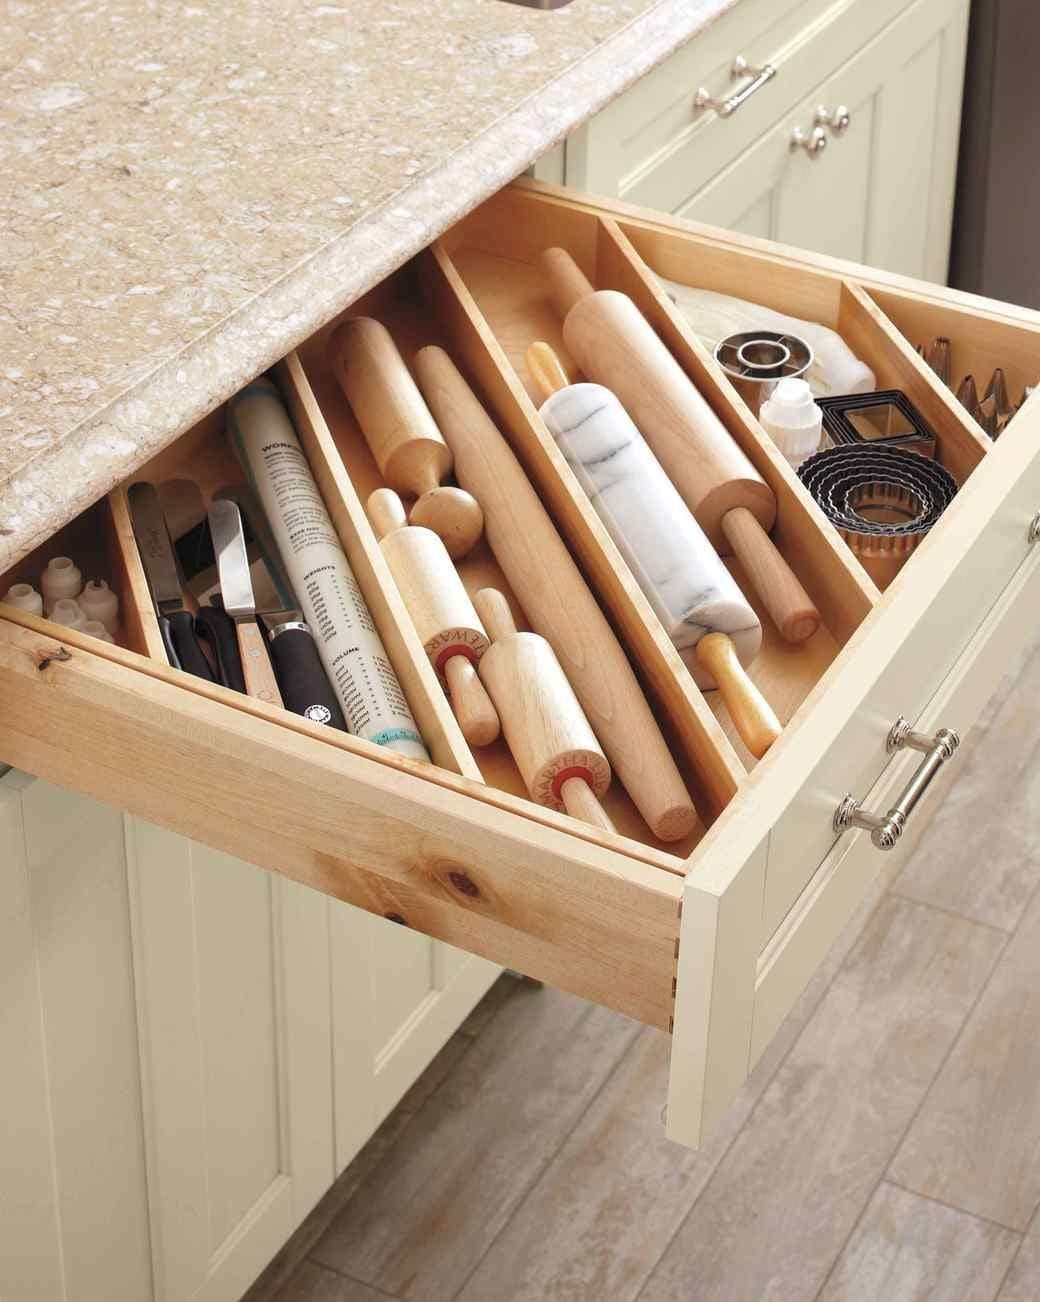 Diy ideas for impeccably organized drawers kitchen